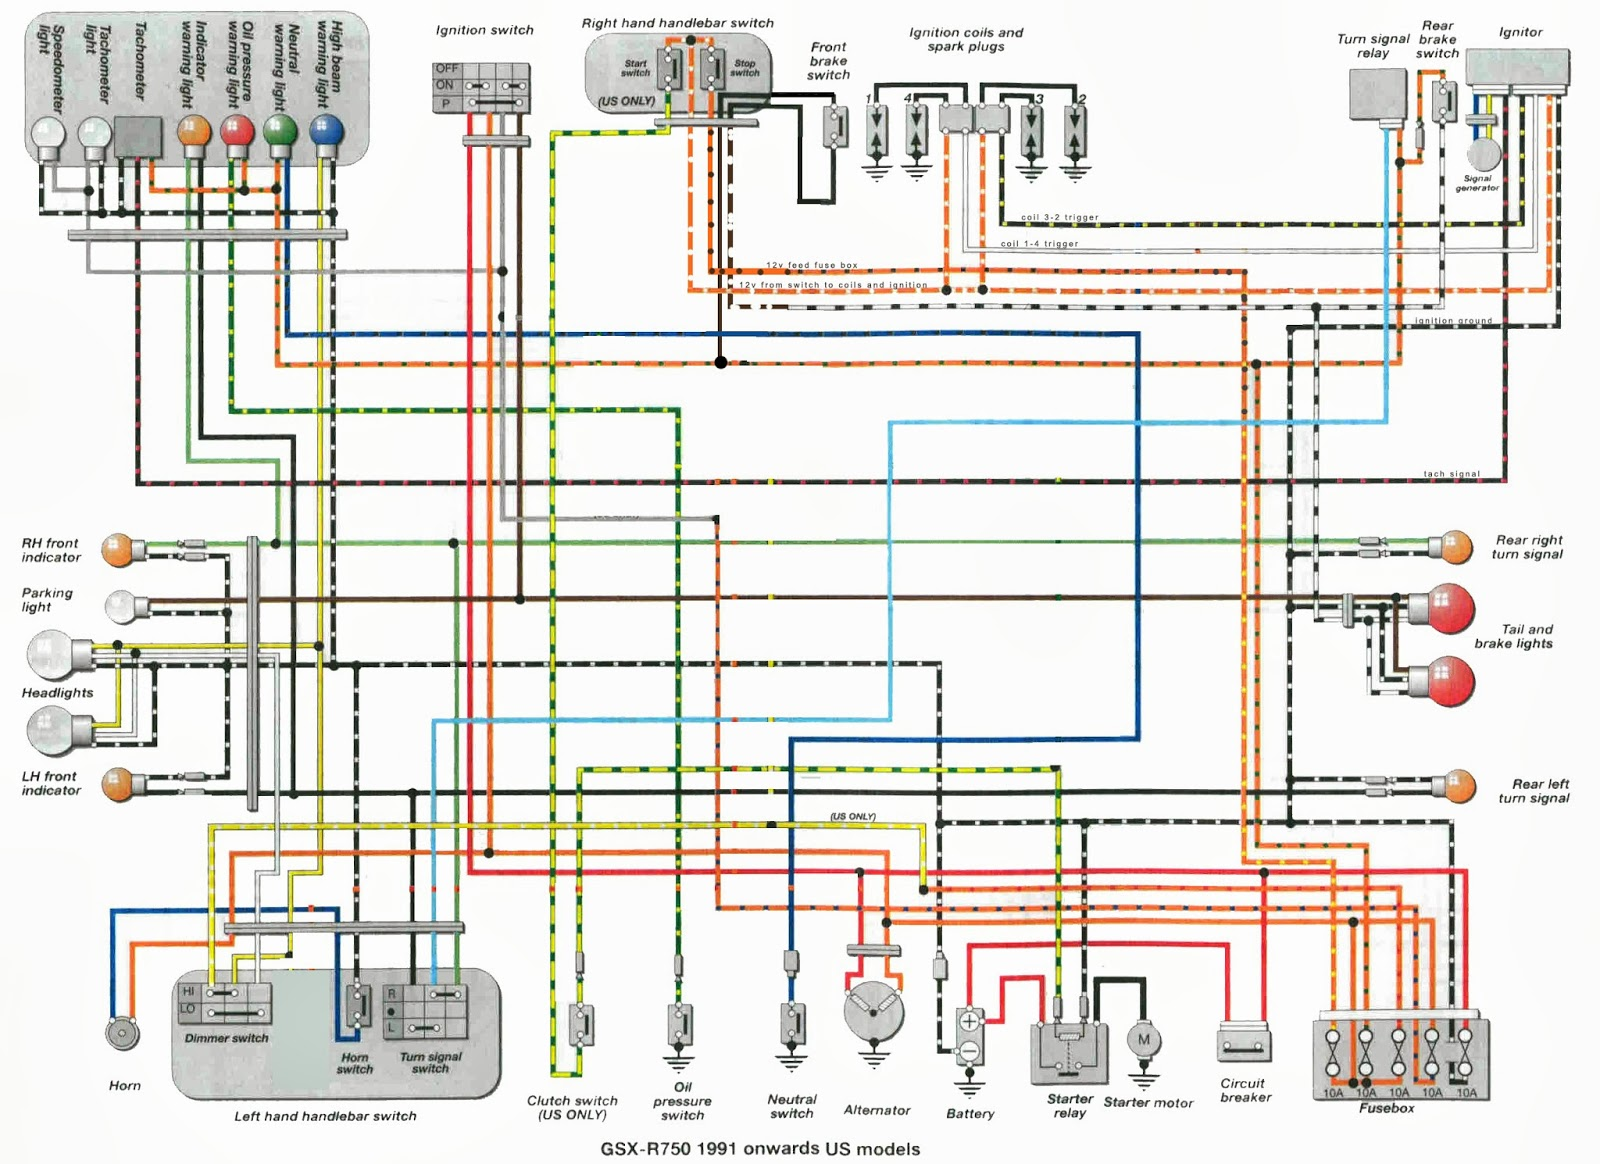 Peterbilt 379 Cab Wiring Diagram | Wiring Library